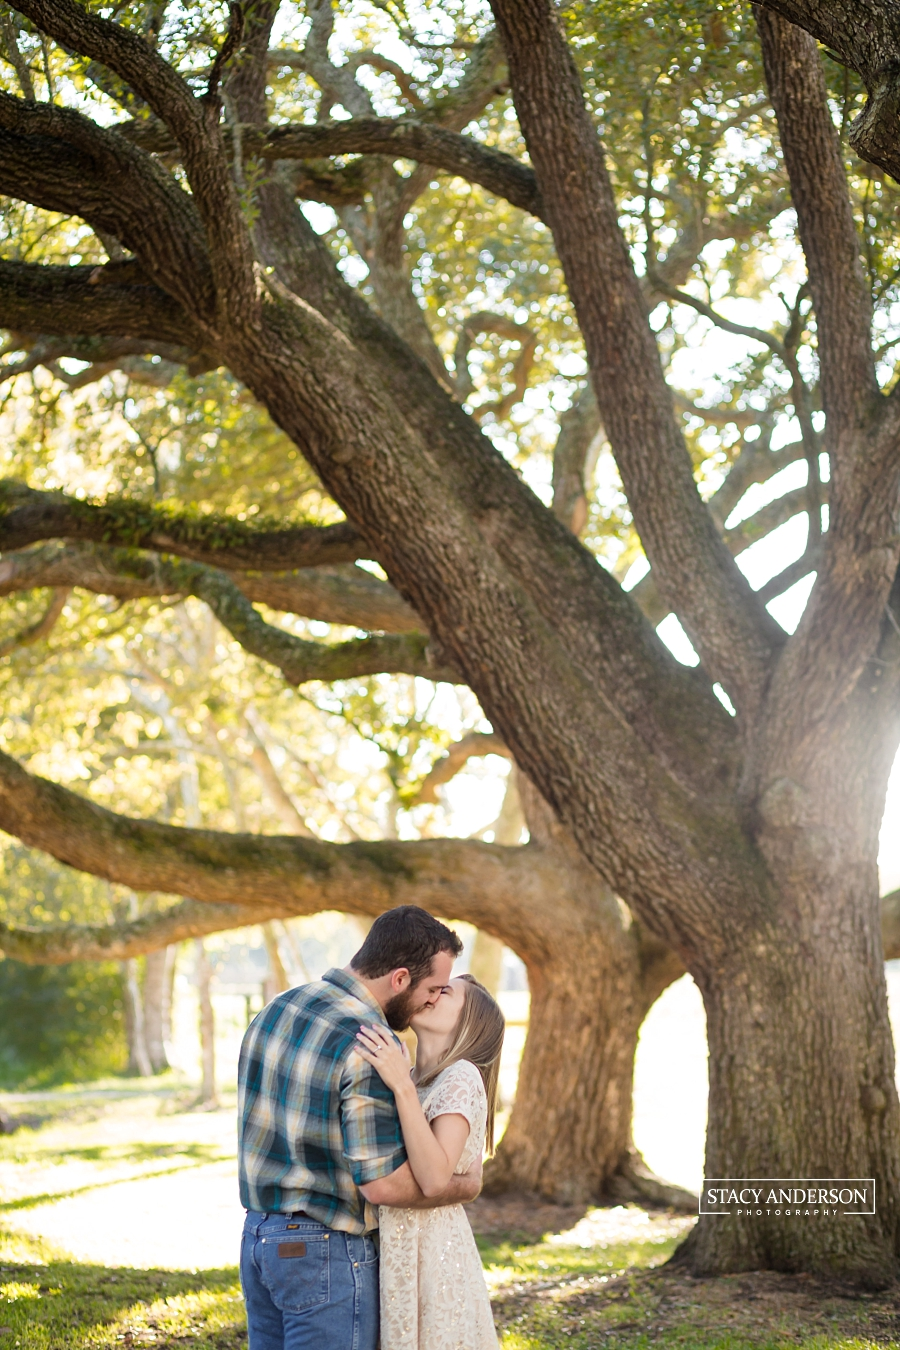 stacy-anderson-photography-alvin-wedding-photographer_0010